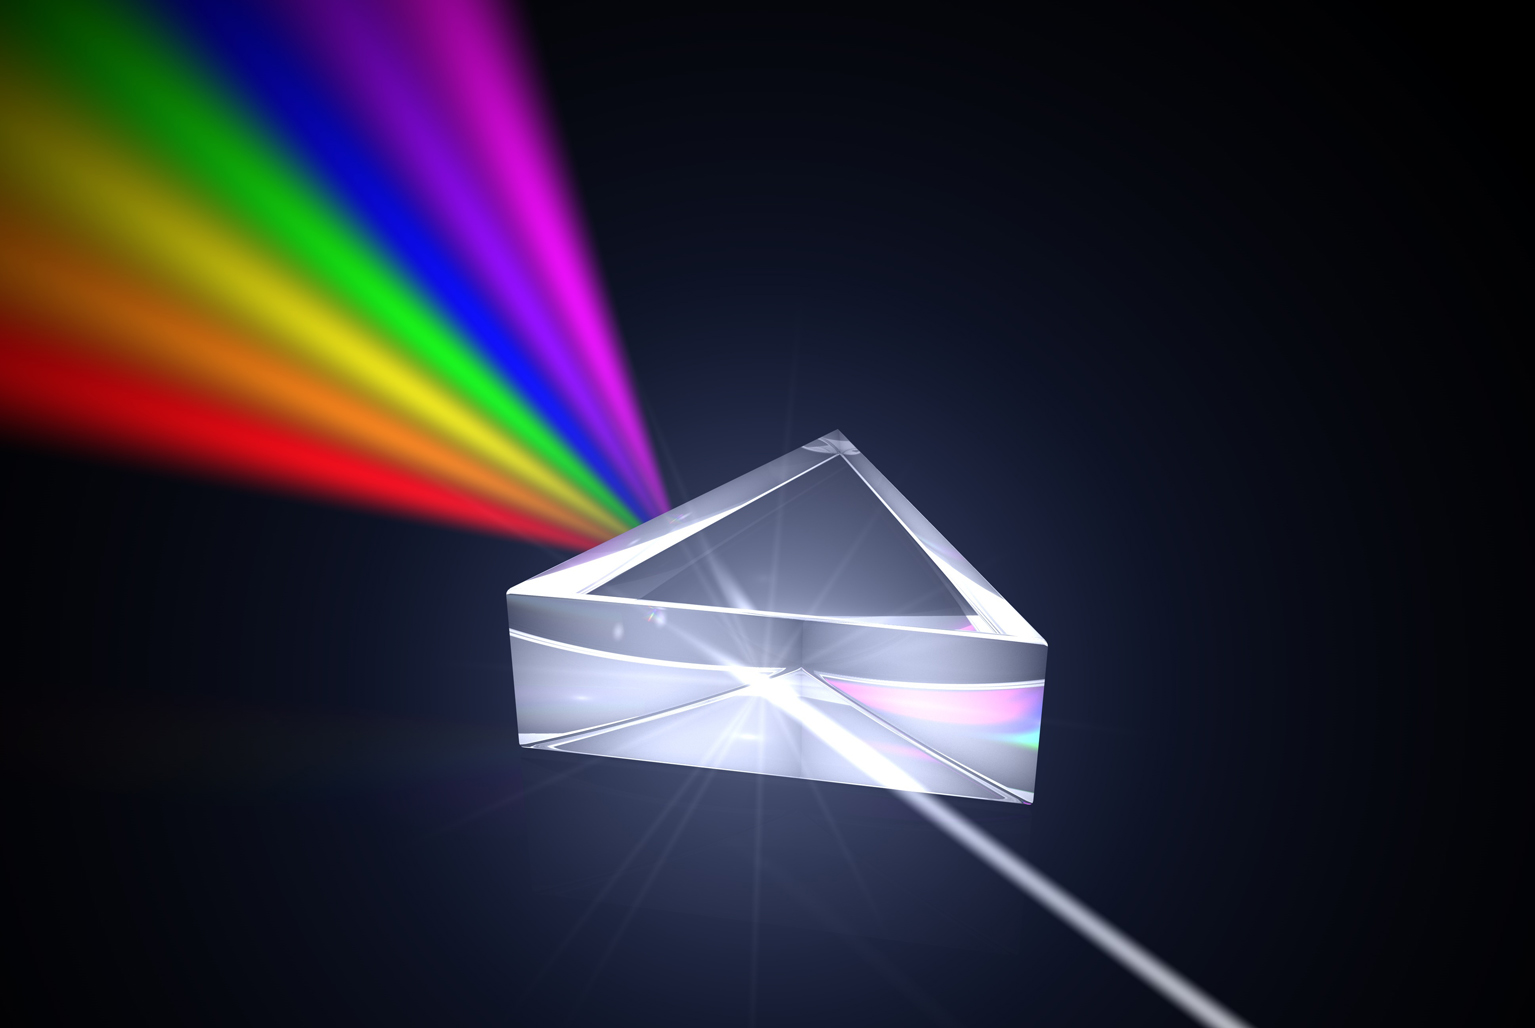 light-split-into-spectrum-by-prism